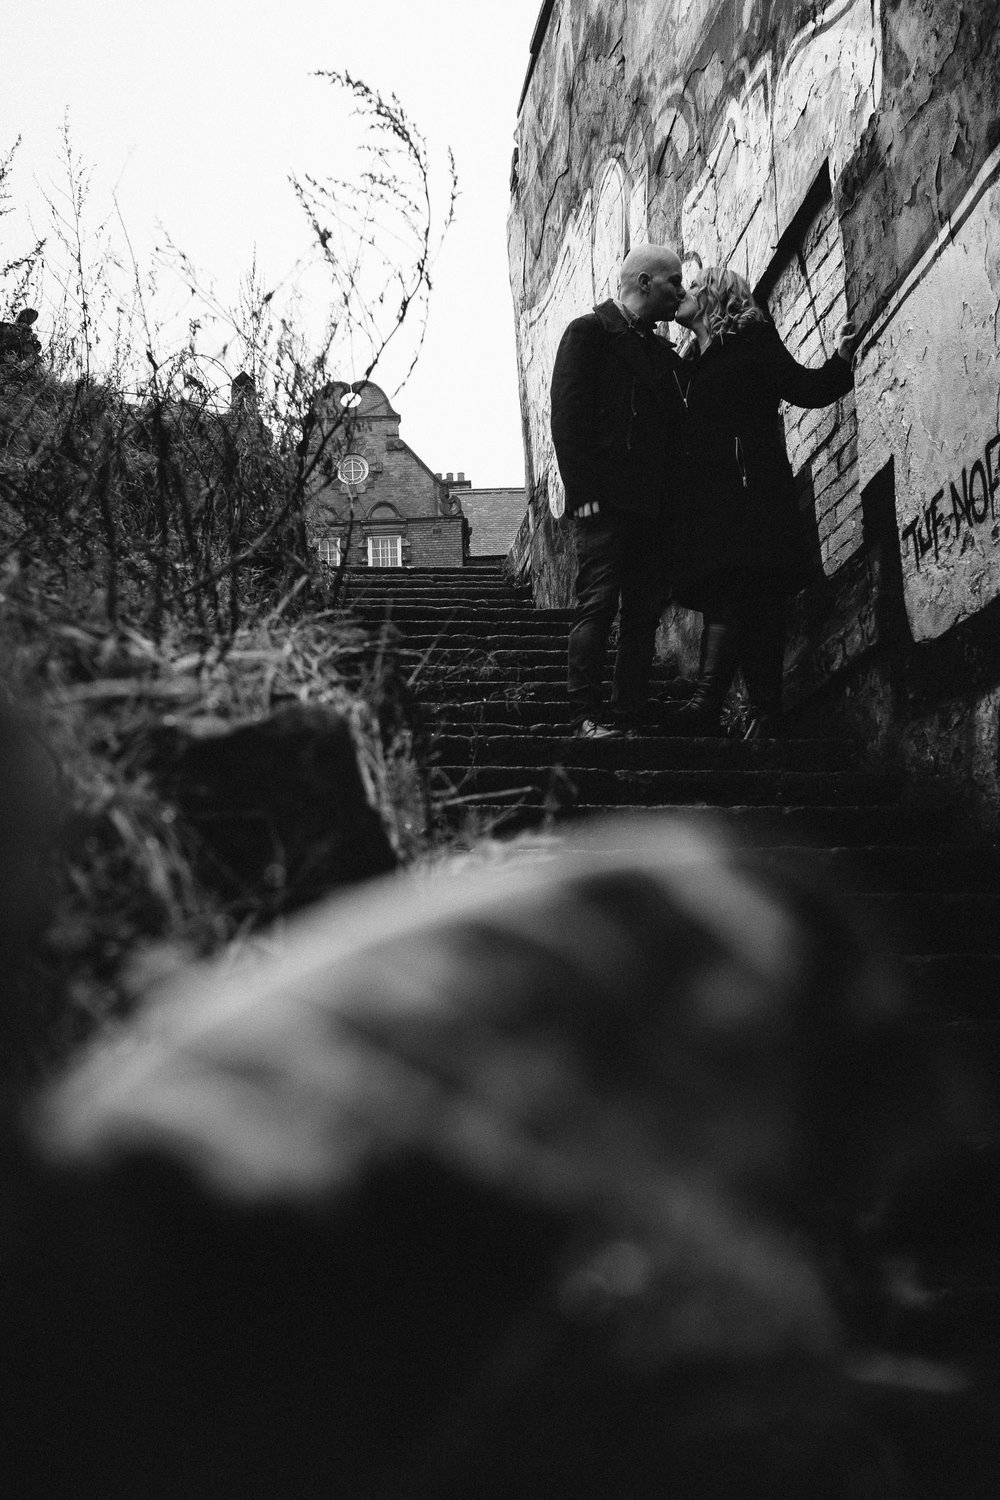 A black and white photo of a couple kissing on steps